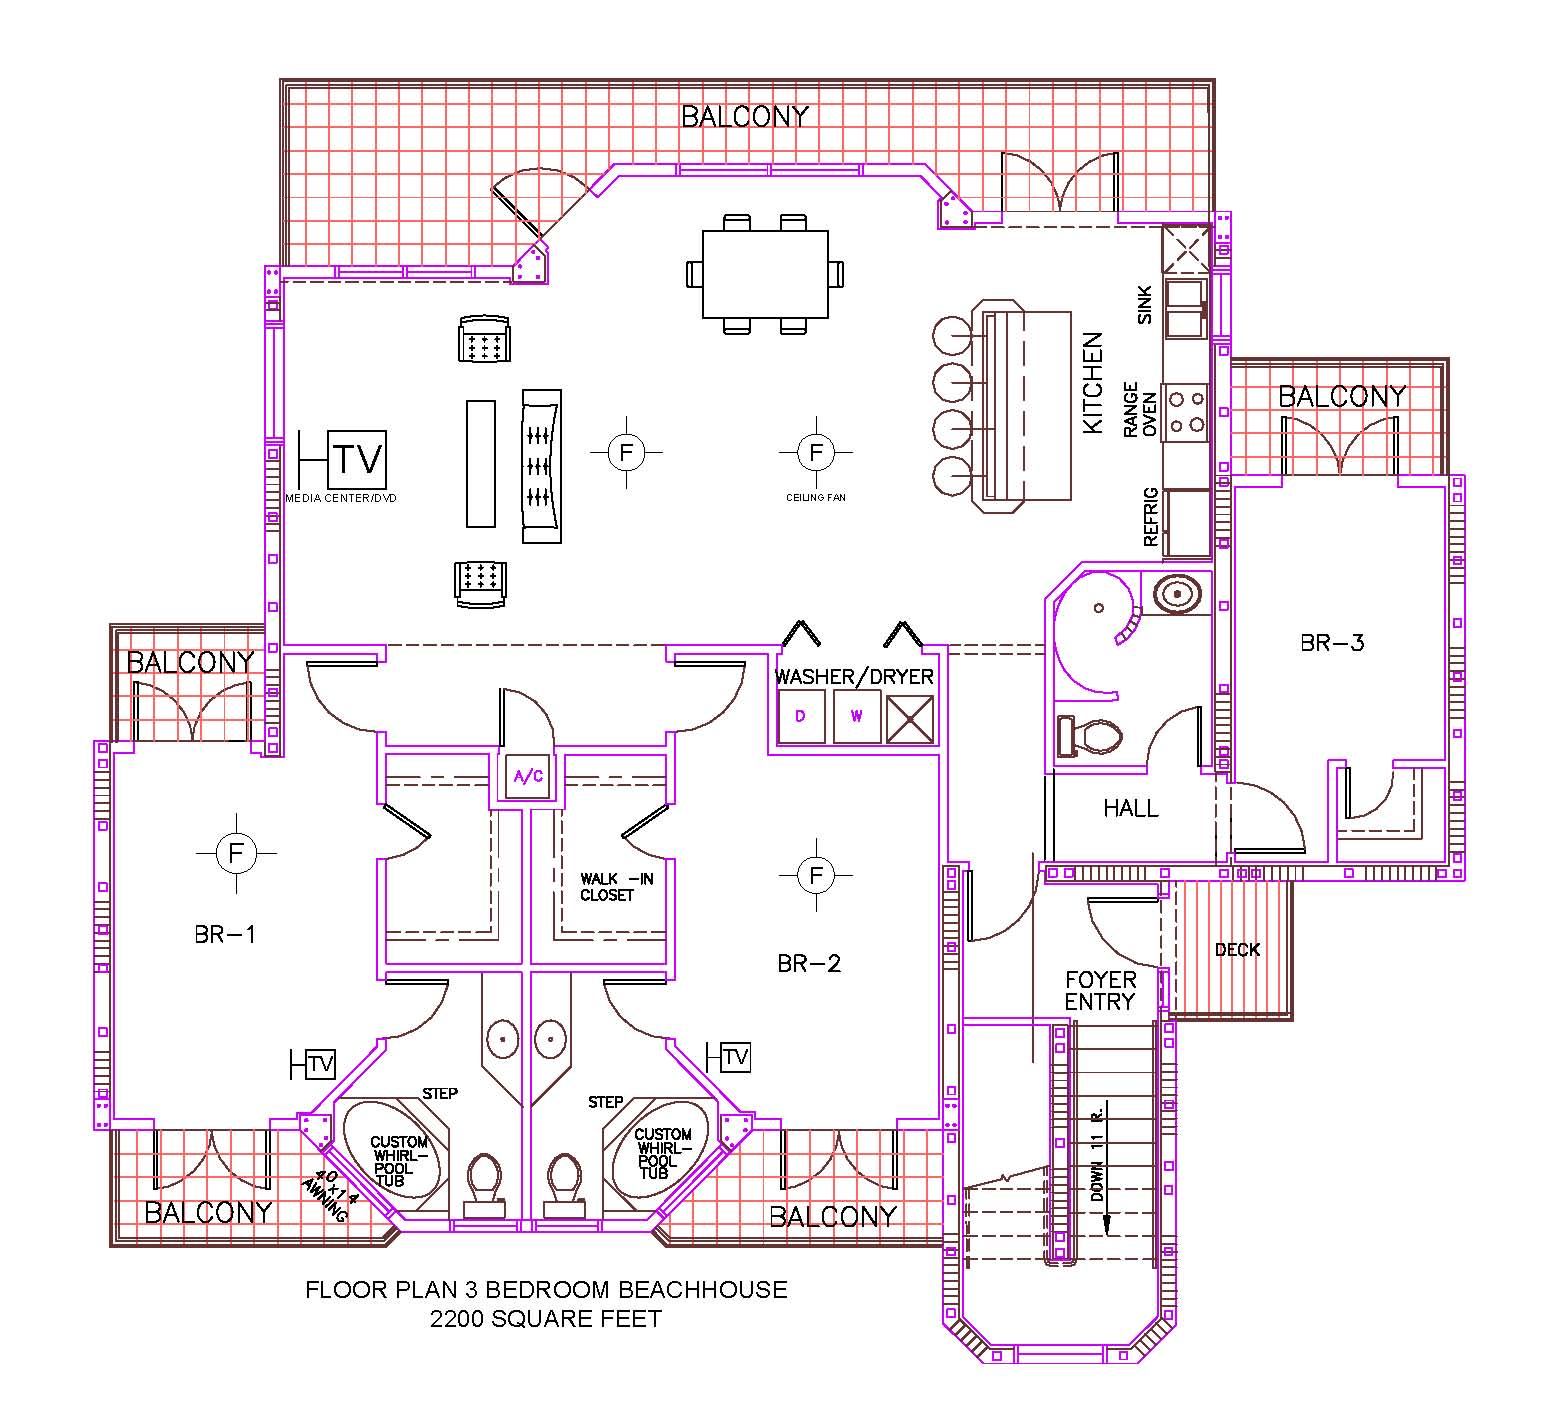 Floor plan for pelican point st augustine fl for 3 bedroom beach house designs